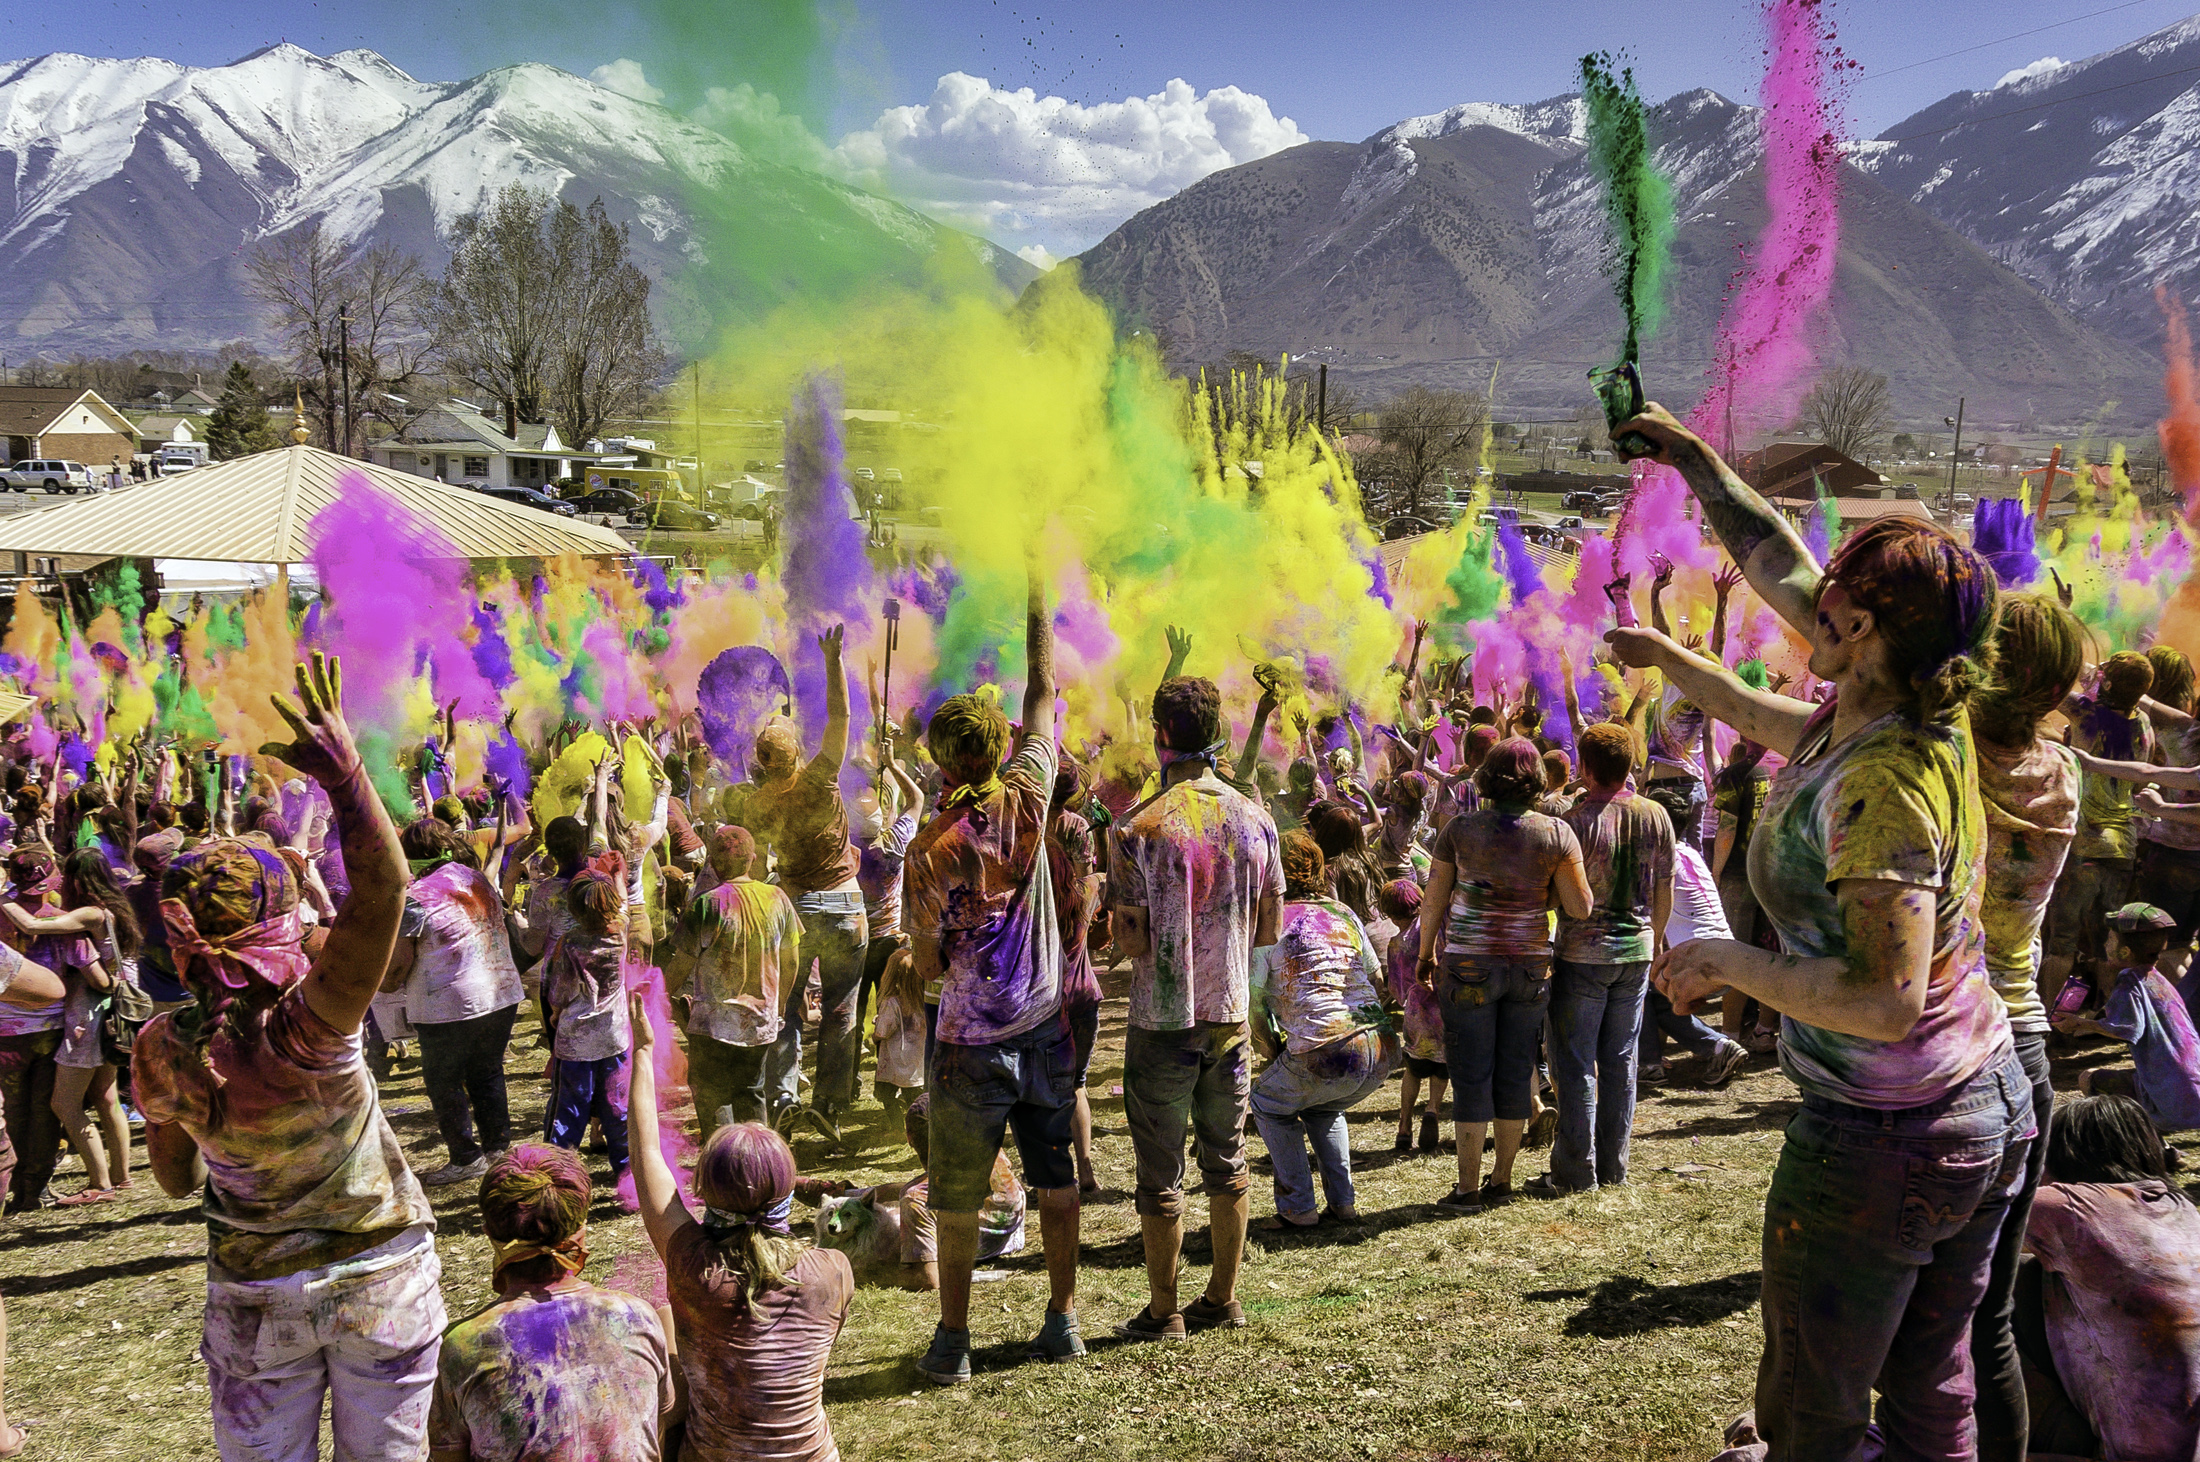 on n festival essay on holi for students and kids whatistheurl com